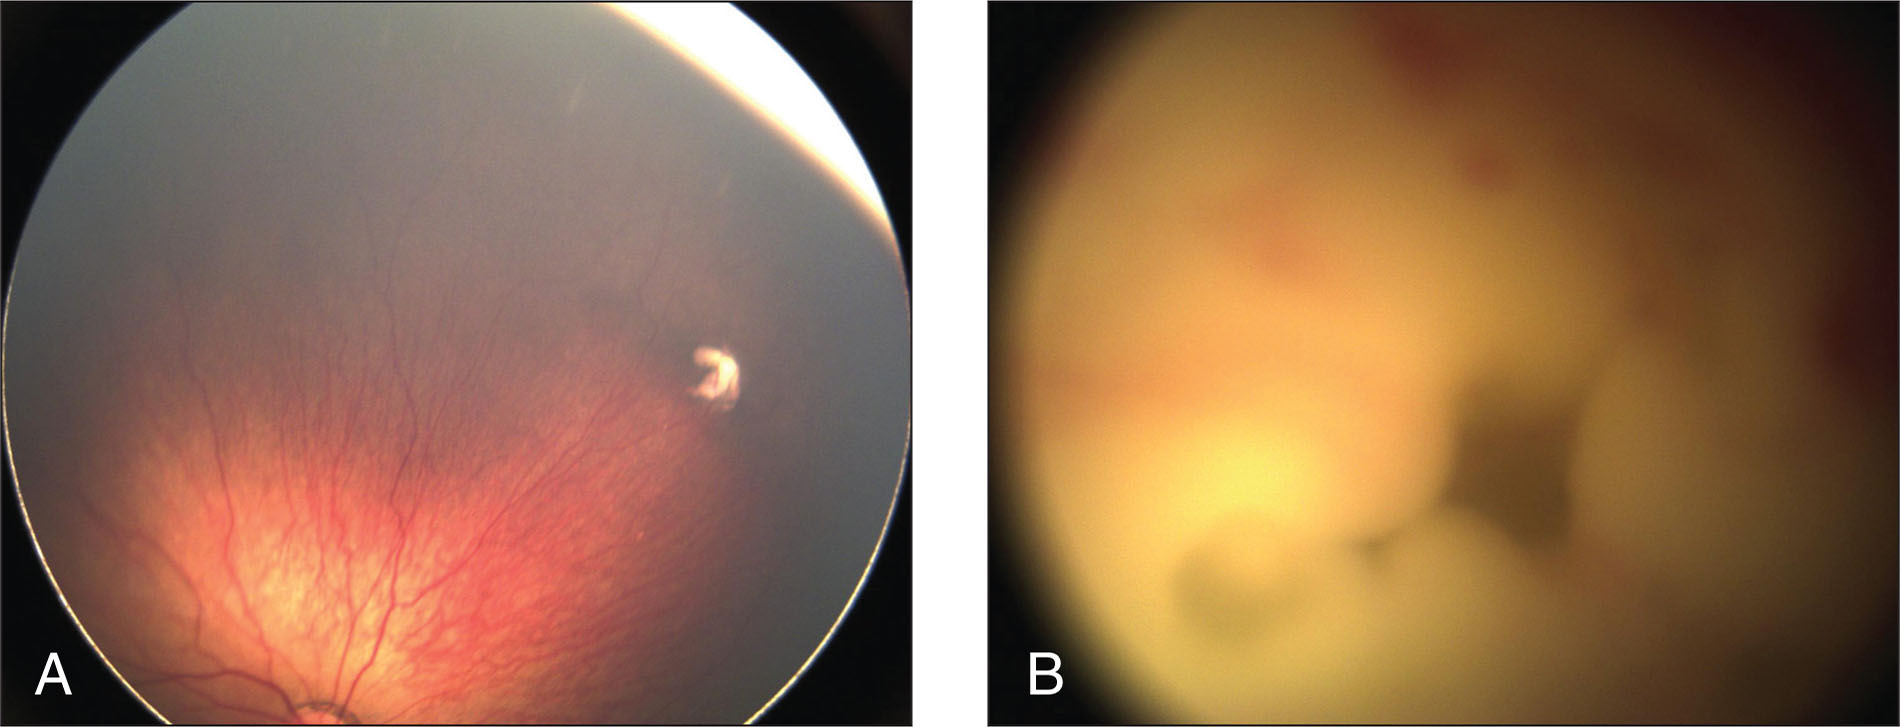 Fundus photographs of (A) the right eye showing periphery with one large horseshoe-shaped subretinal lesion and multiple, smaller discrete white lesions, and (B) the left eye showing a white, creamy mass with areas of hemorrhage filling the retrolental space.